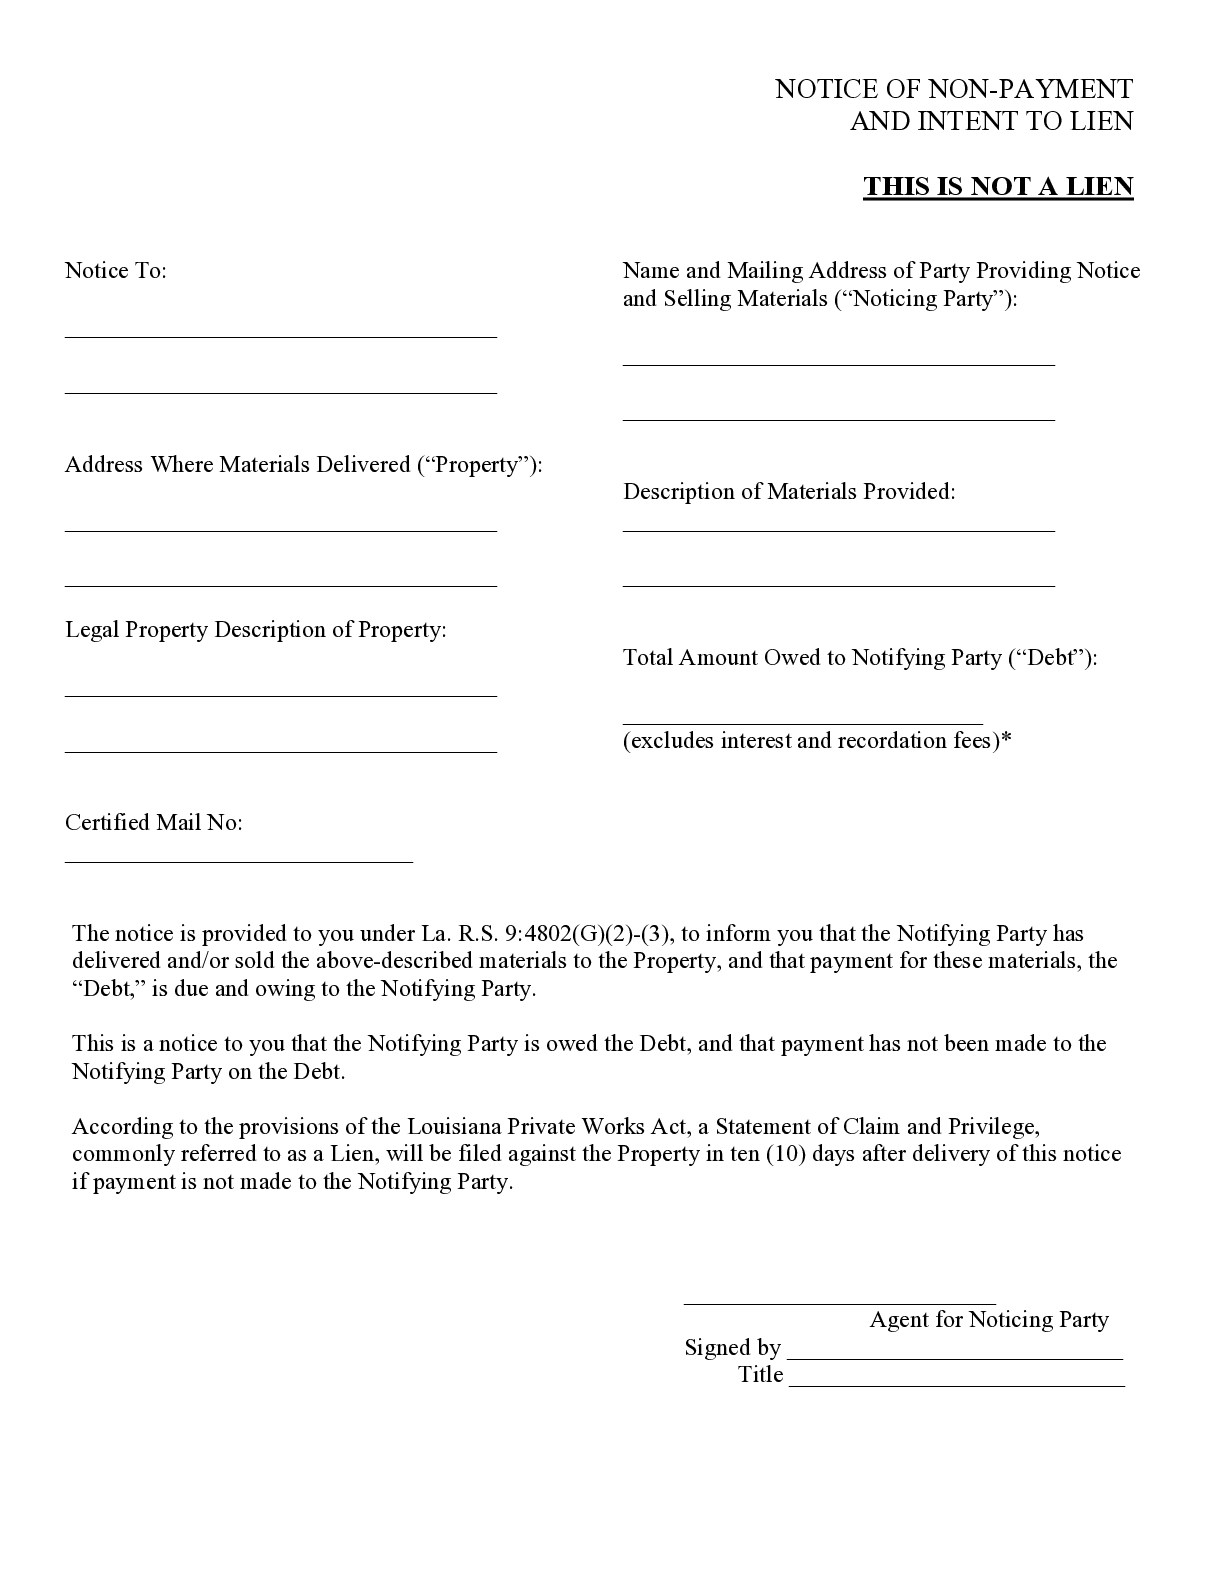 Louisiana Monthly Notice of Non-Payment Form